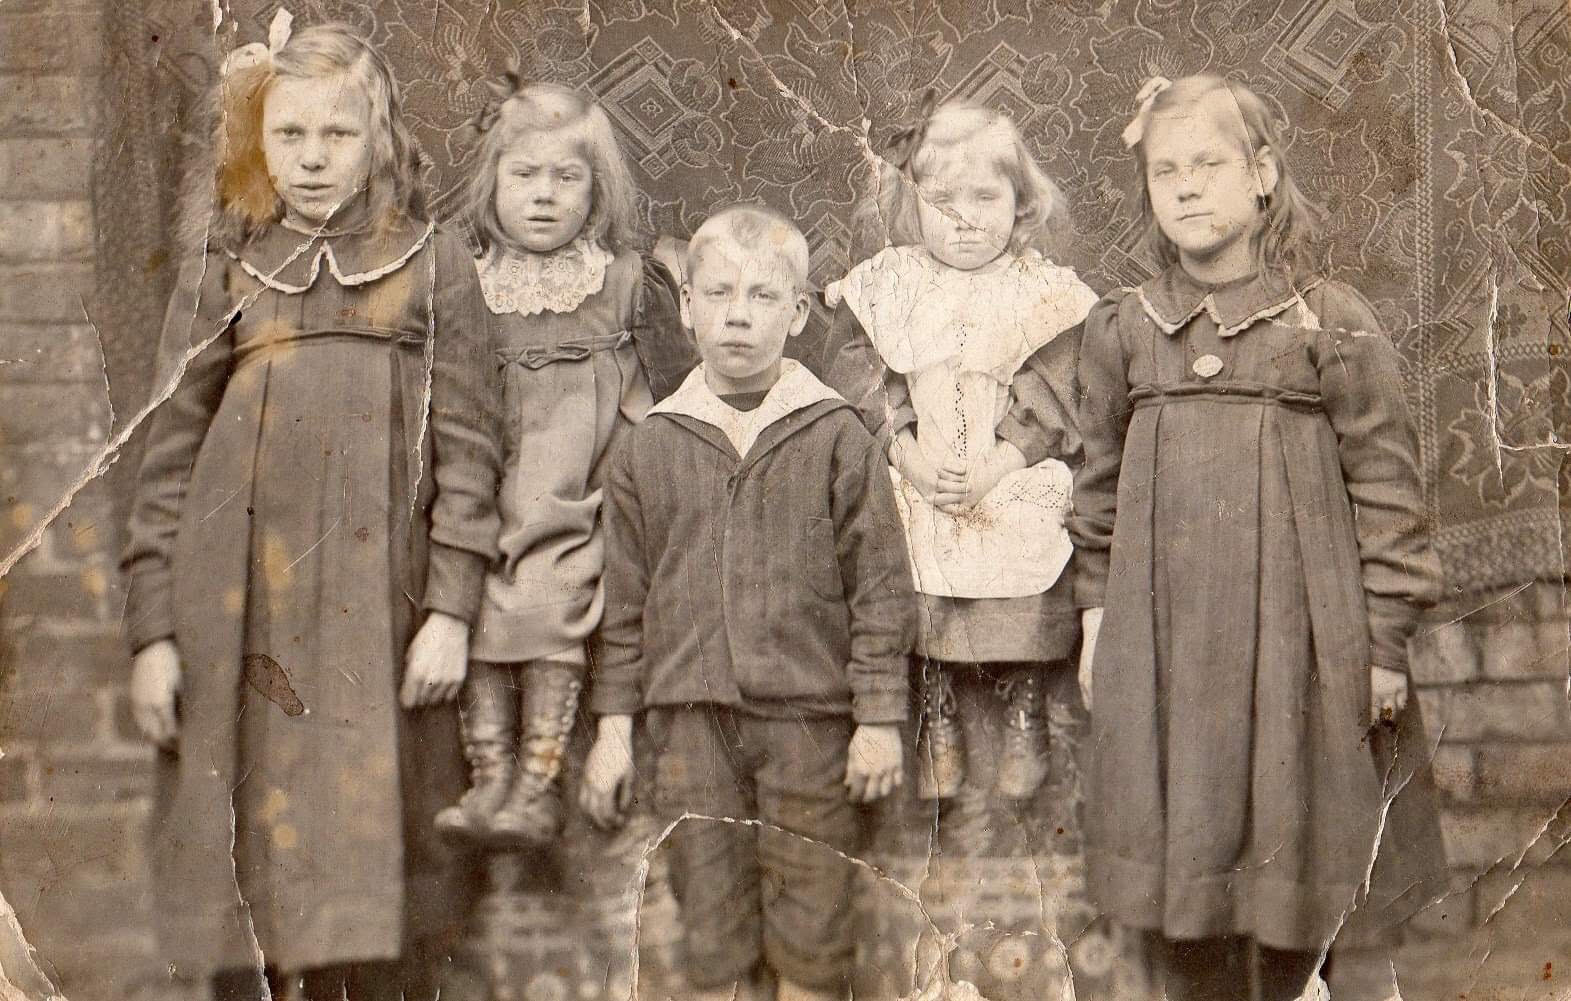 Irene Ferrier second from right, Silas St